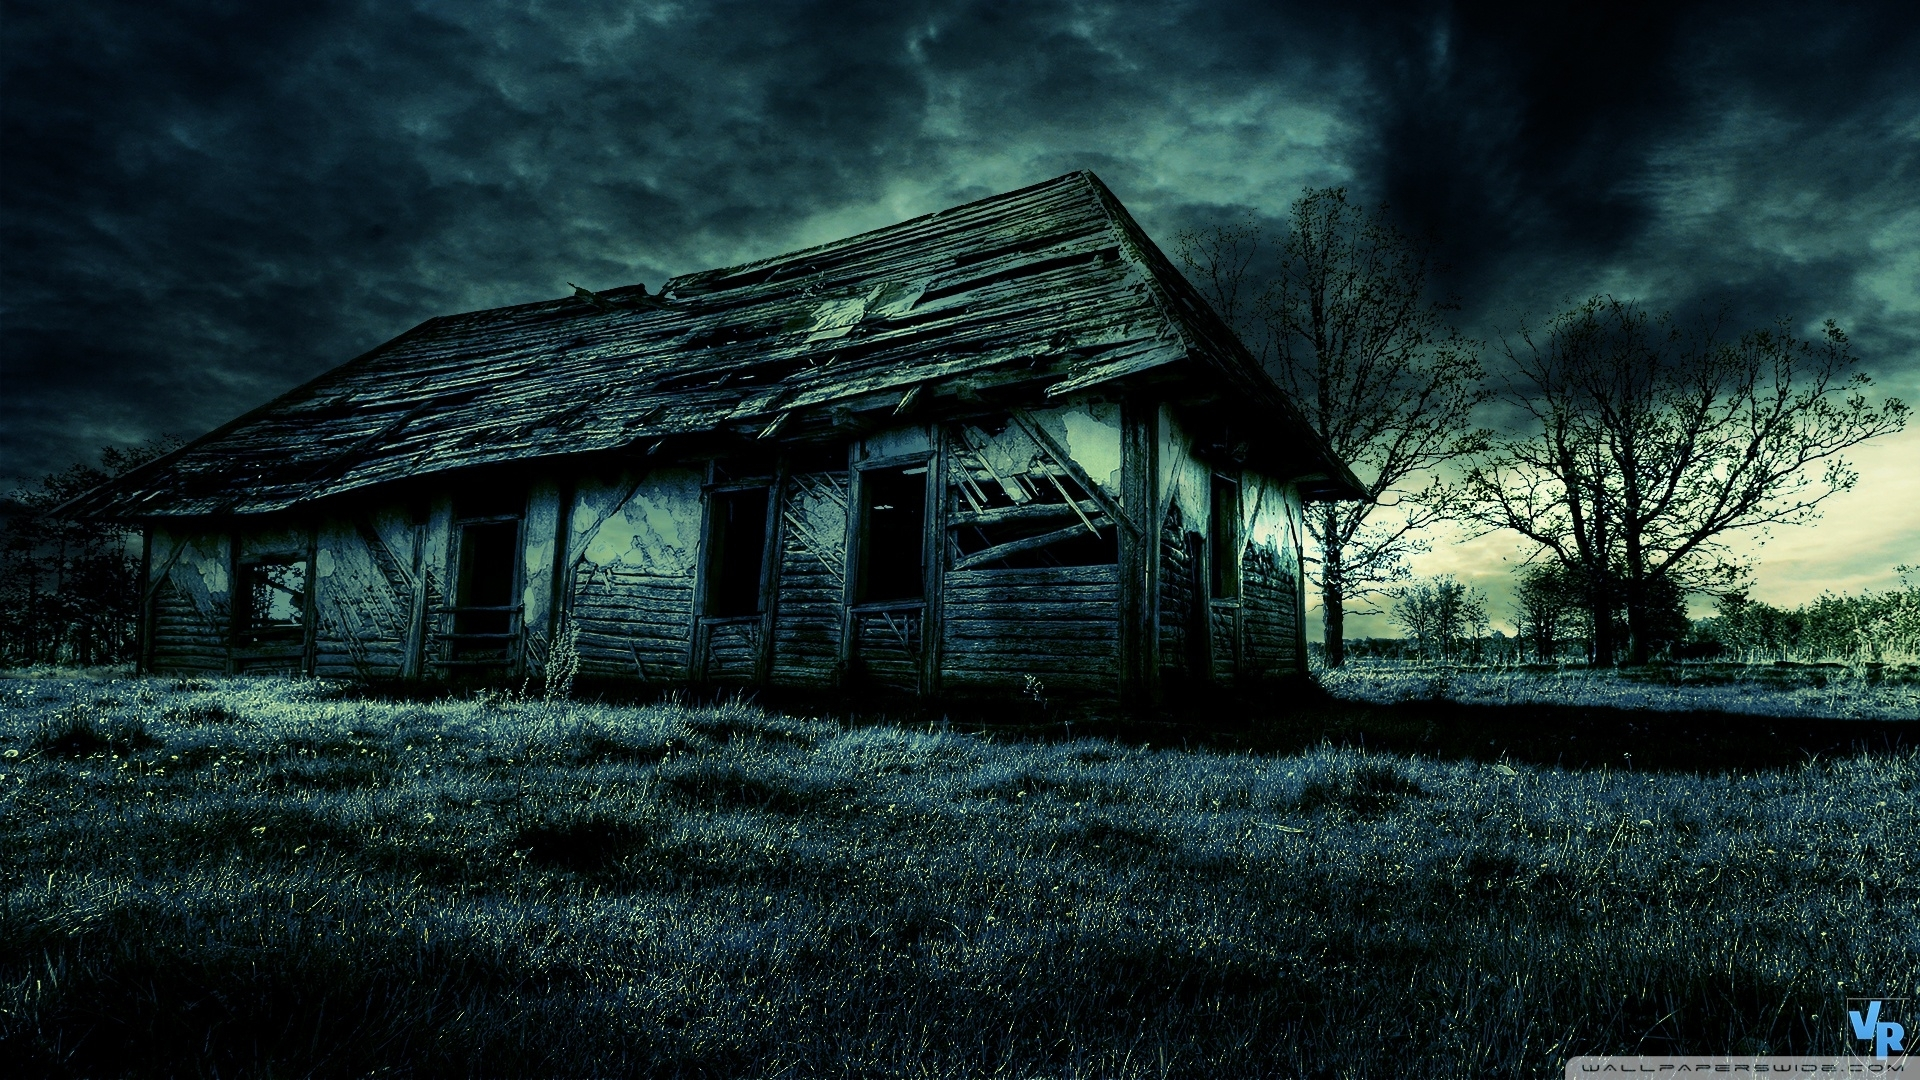 dark old house hd desktop wallpaper widescreen high definition